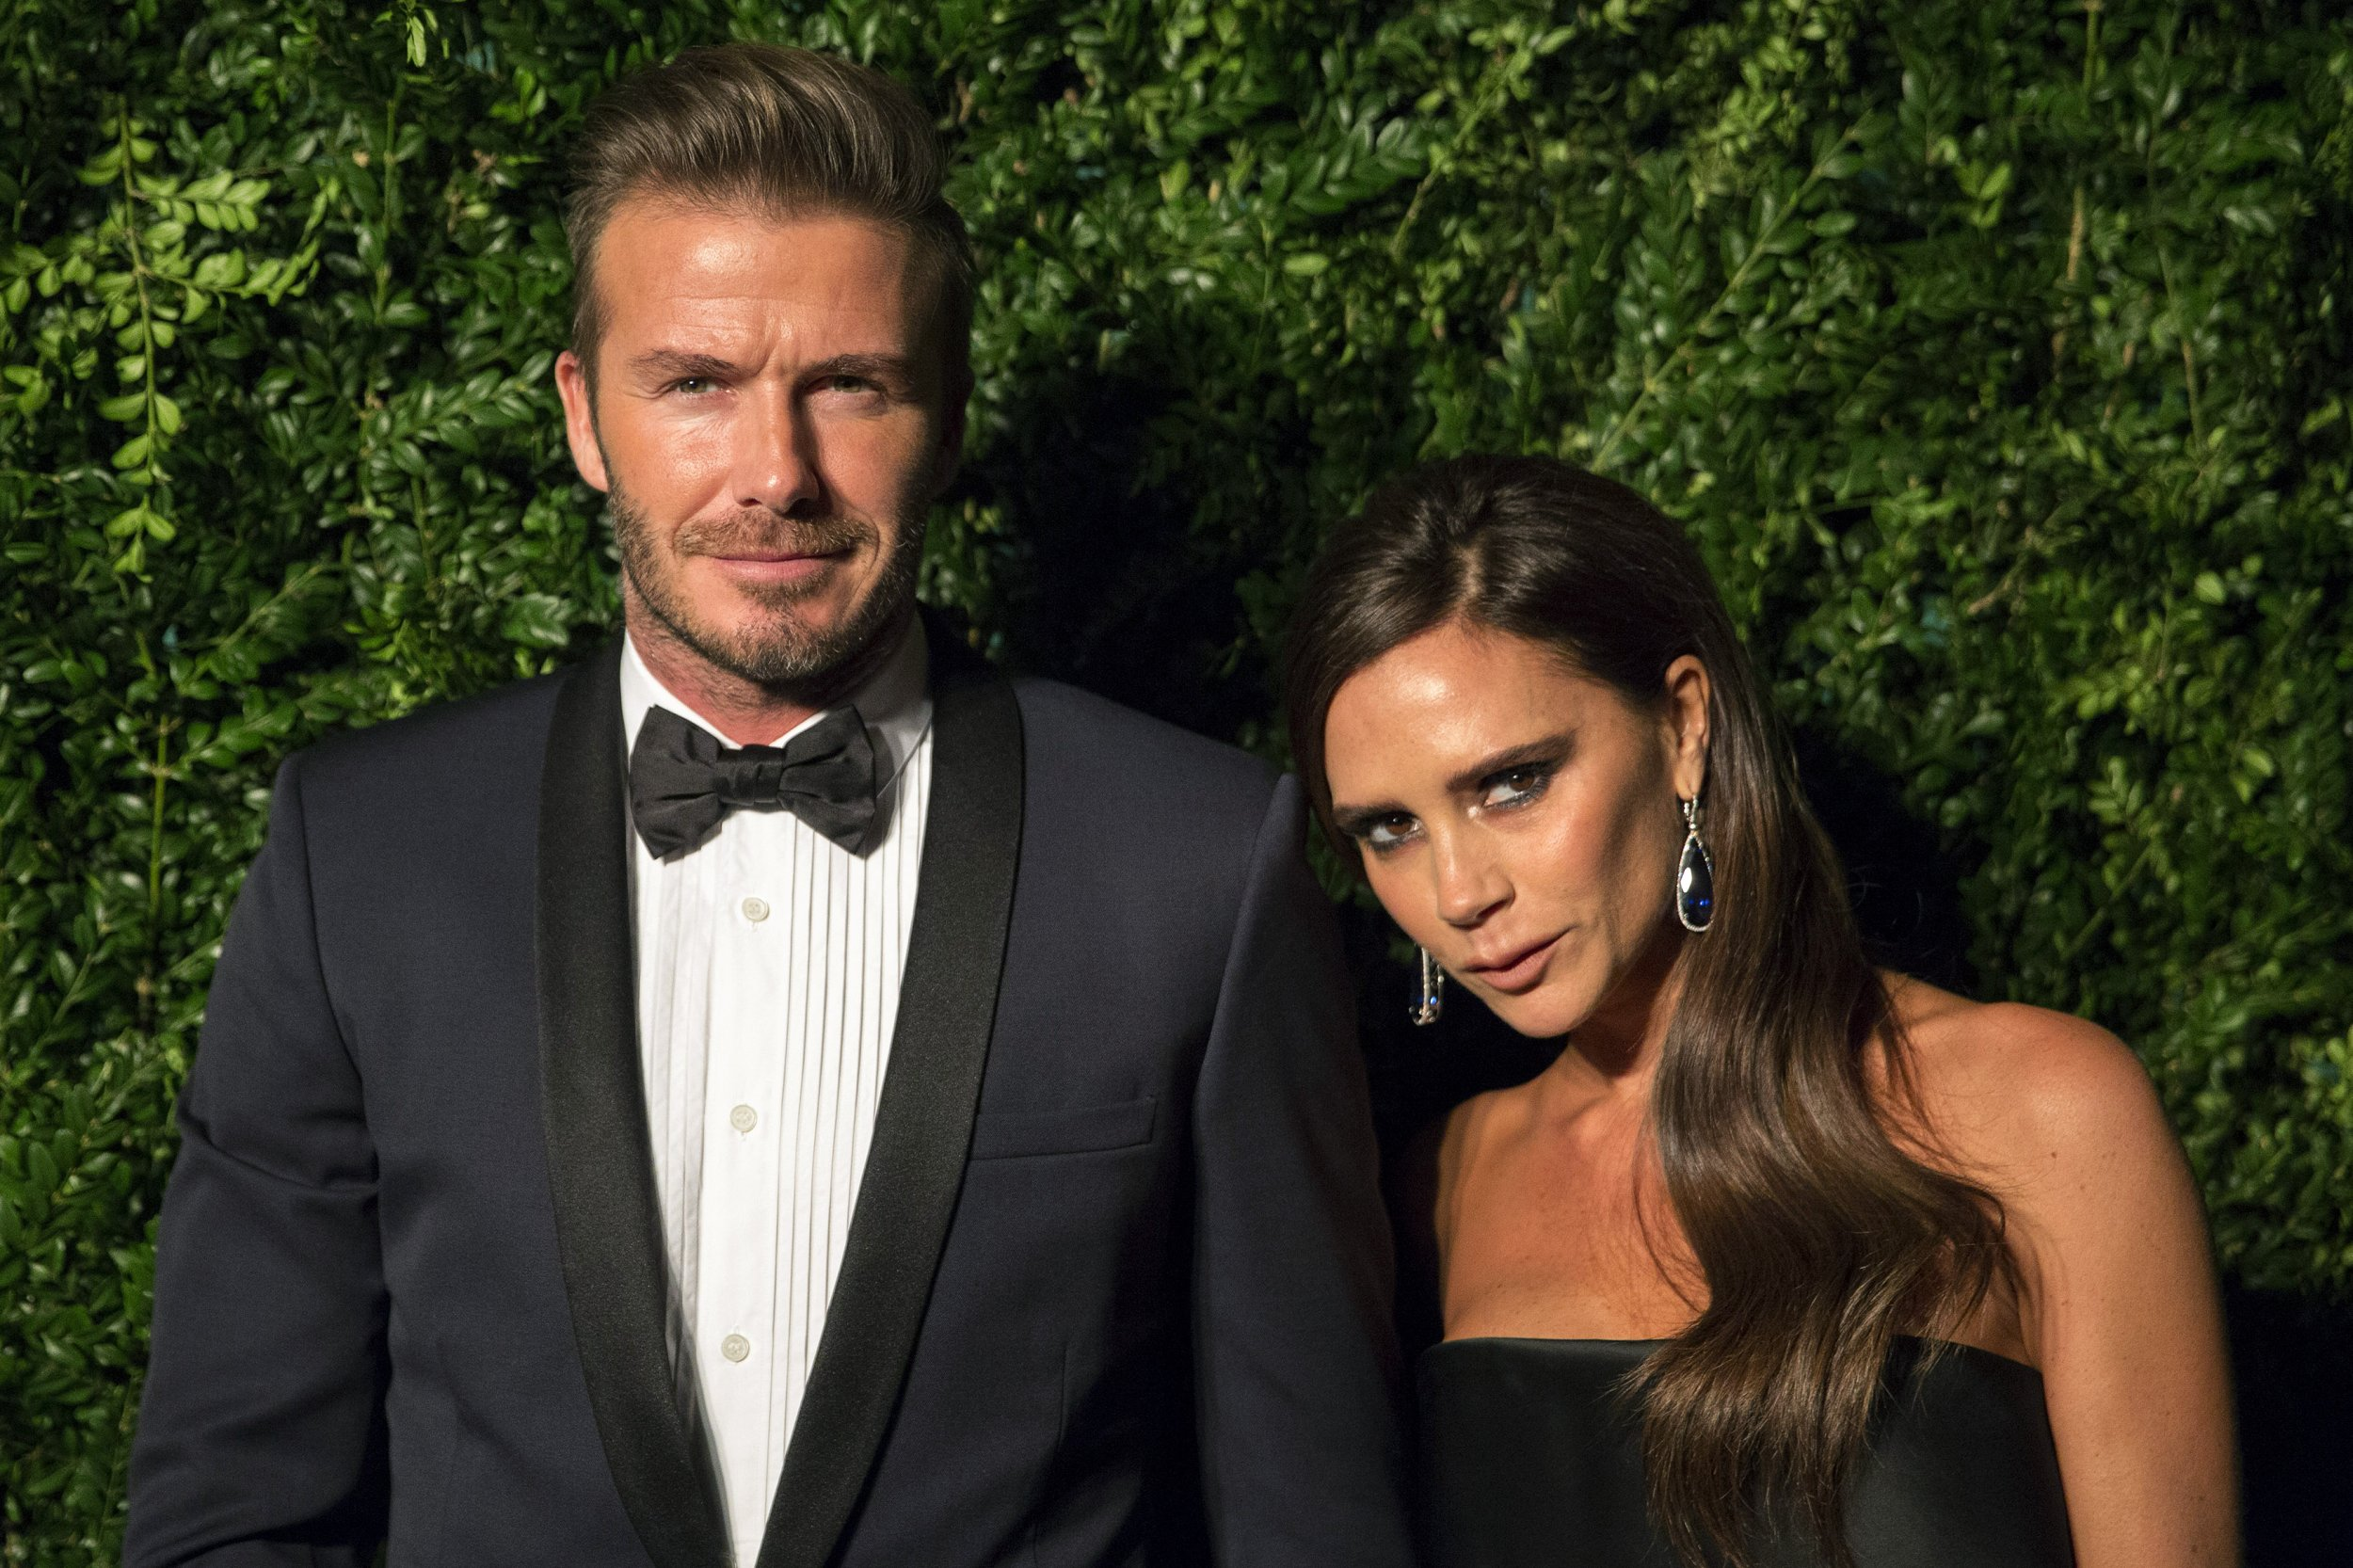 Outstanding David Beckham Steps Down As Director Of Wife Victorias Fashion Empire Short Hairstyles For Black Women Fulllsitofus